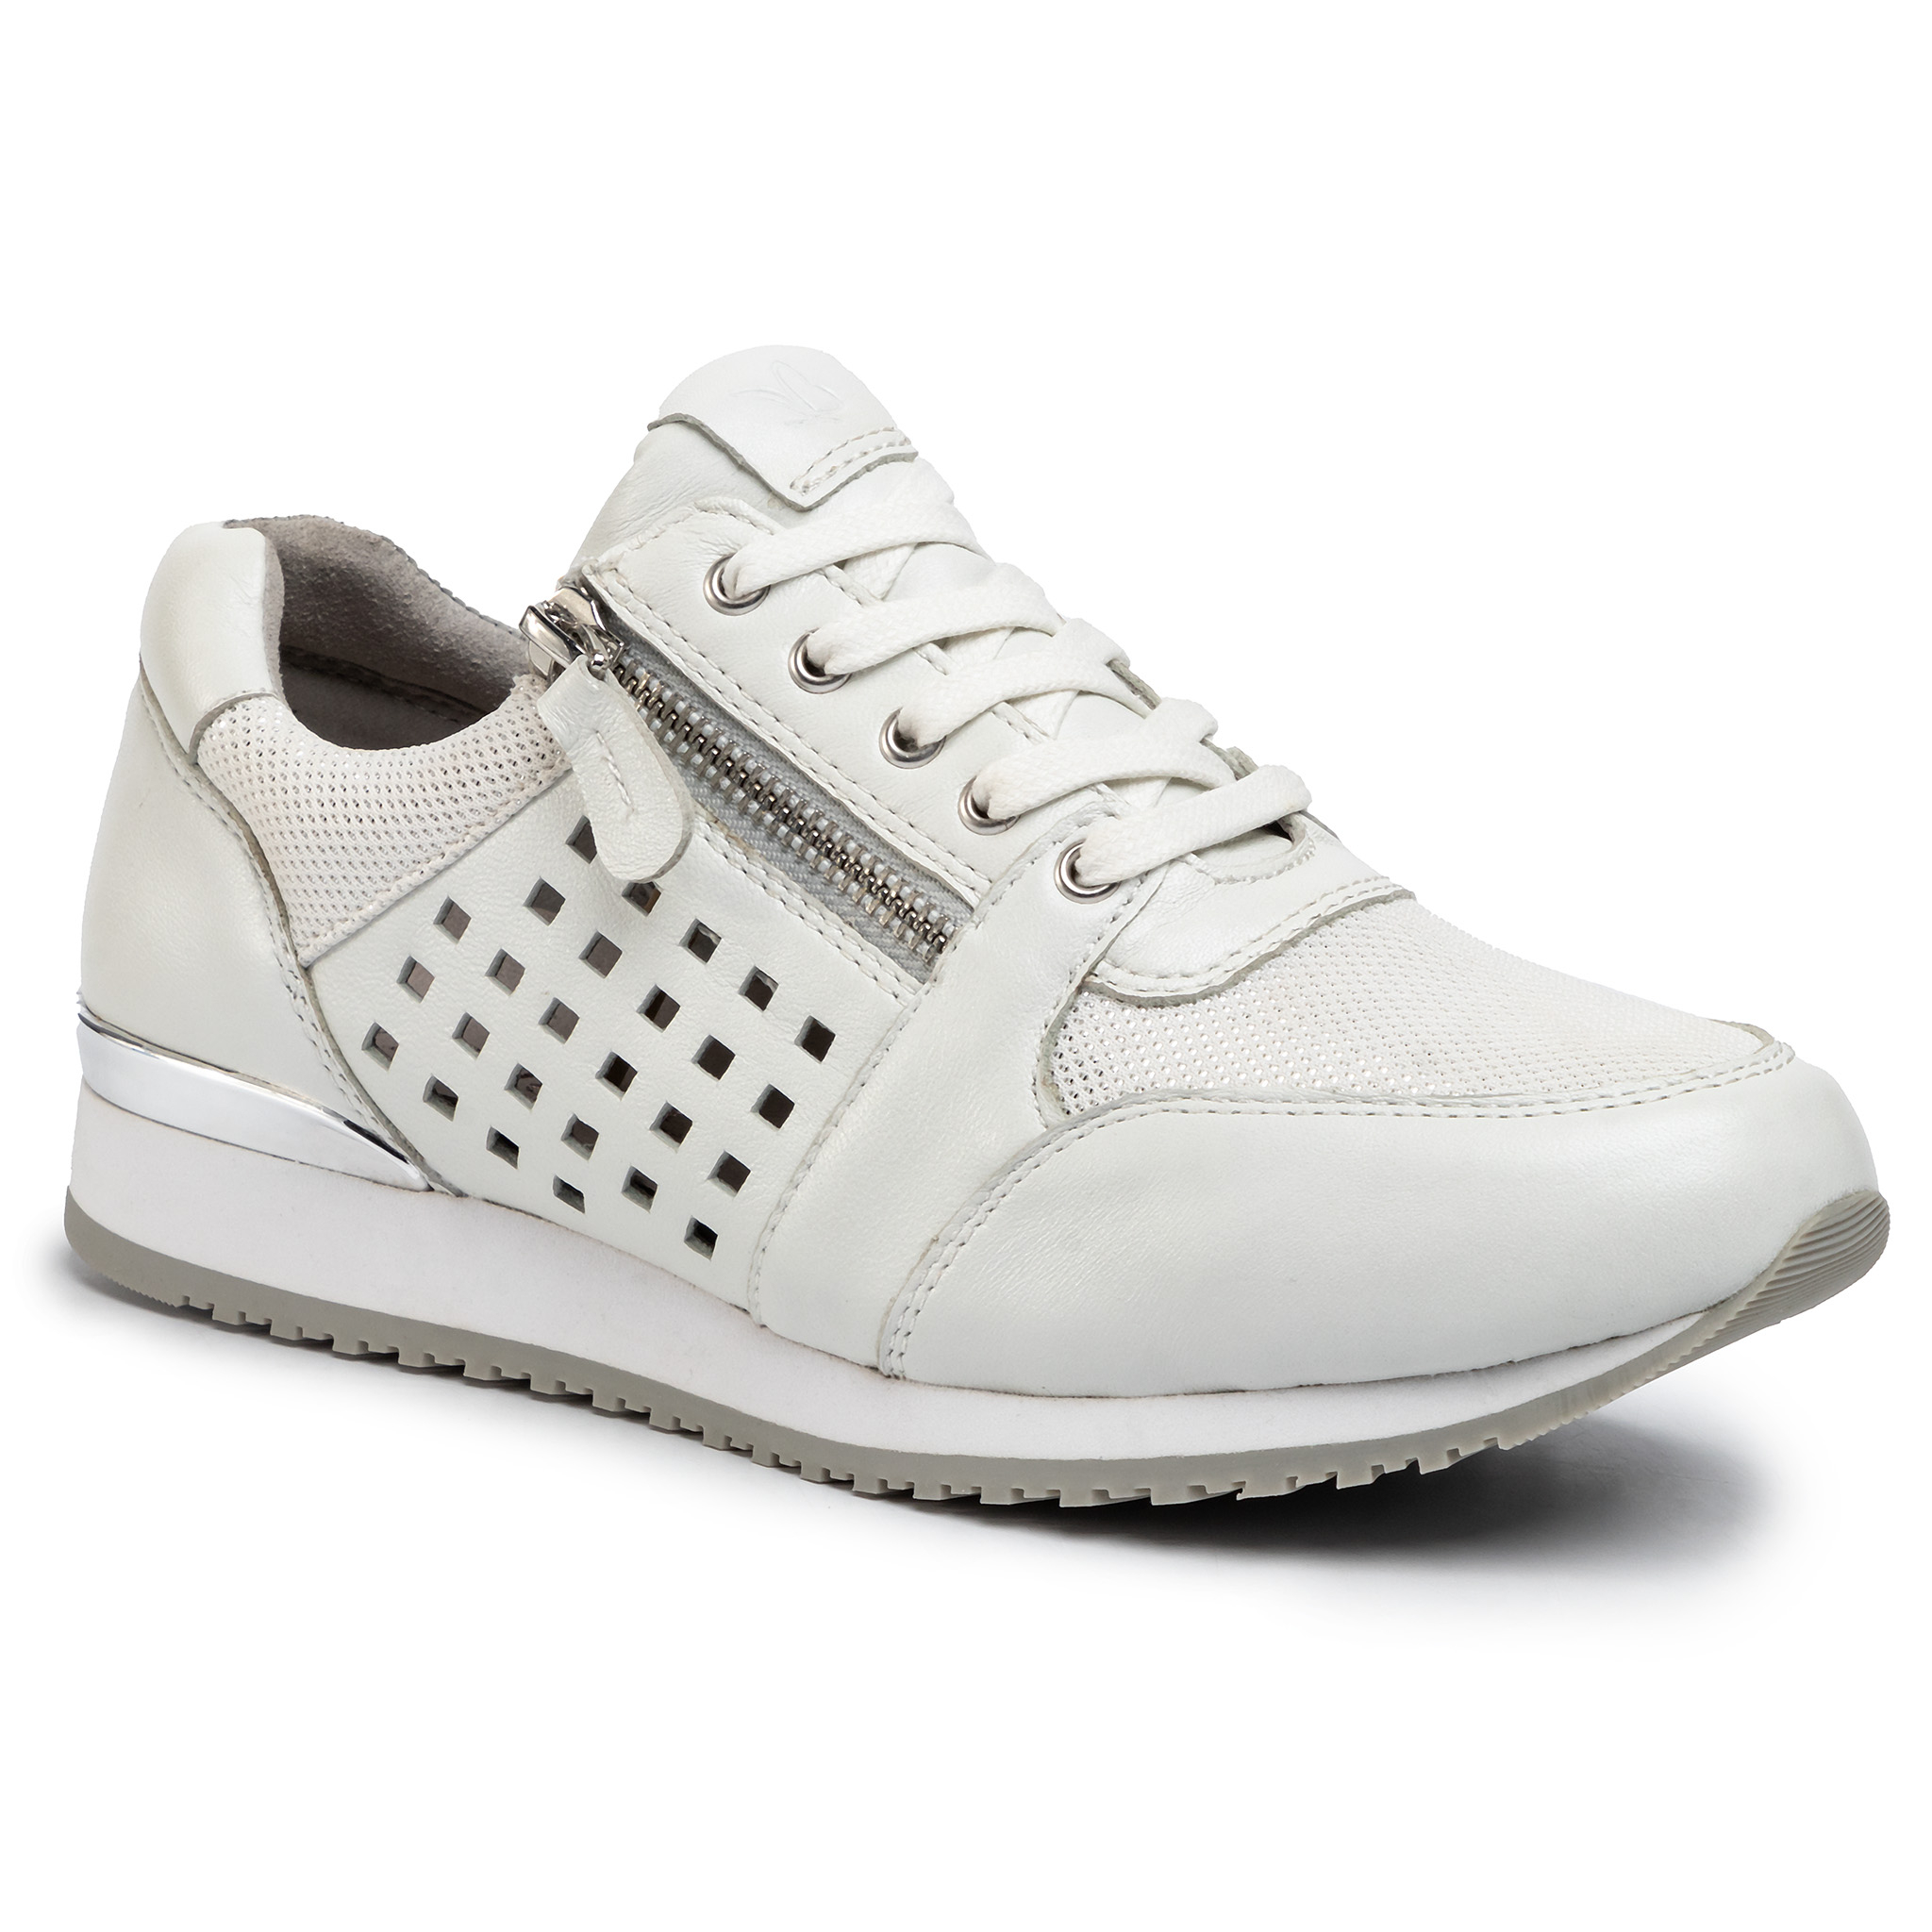 Image of Sneakers CAPRICE - 9-23503-24 White Comb 197